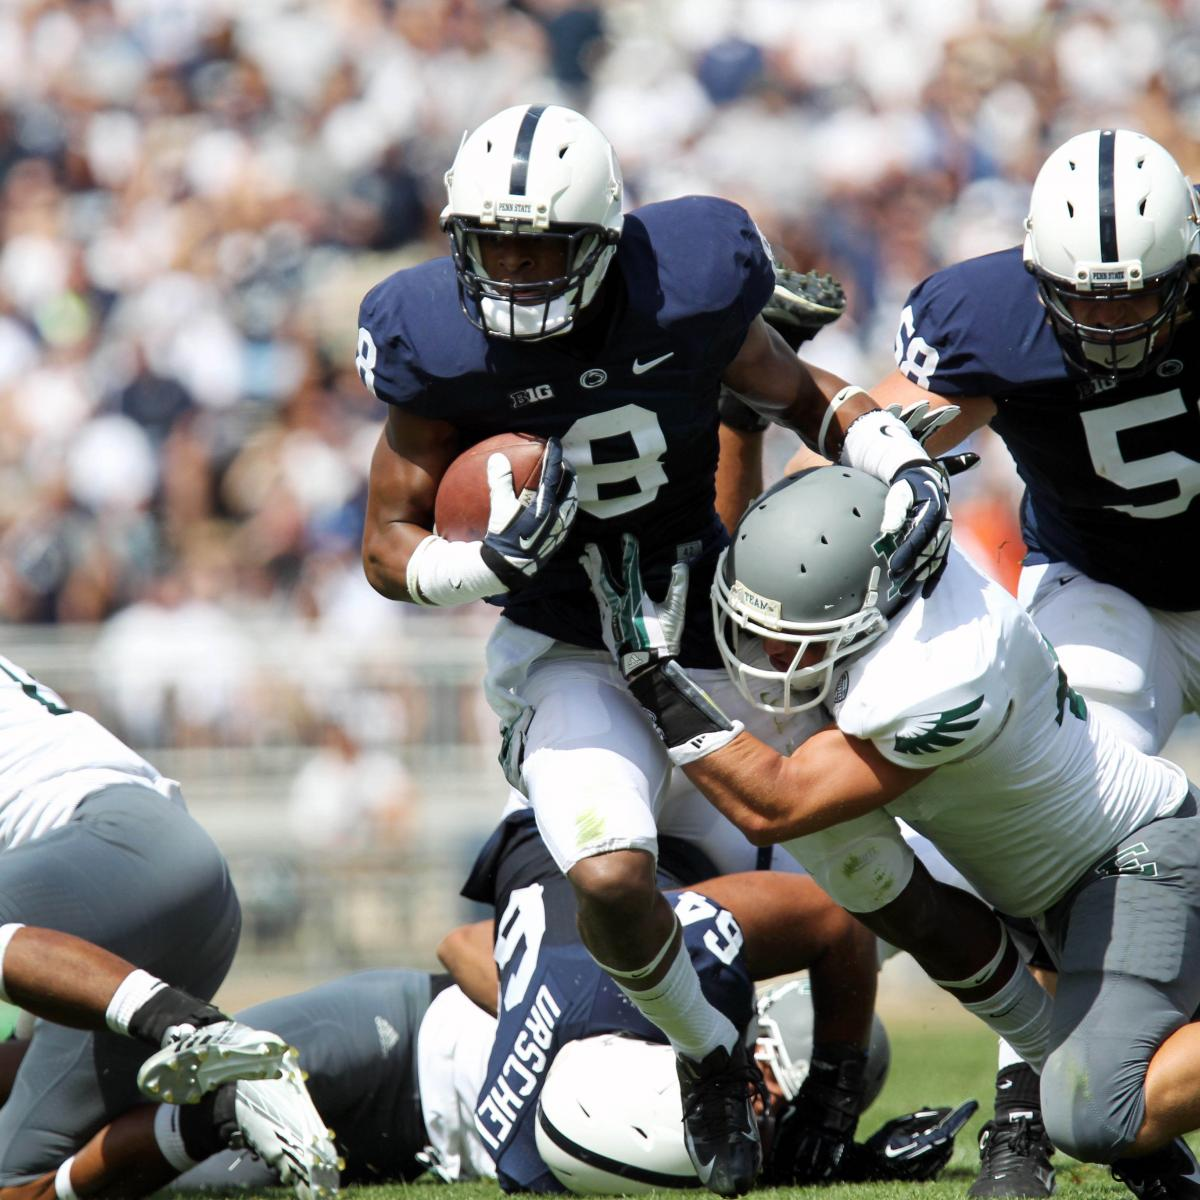 UCF Vs. Penn State: Live Score And Highlights